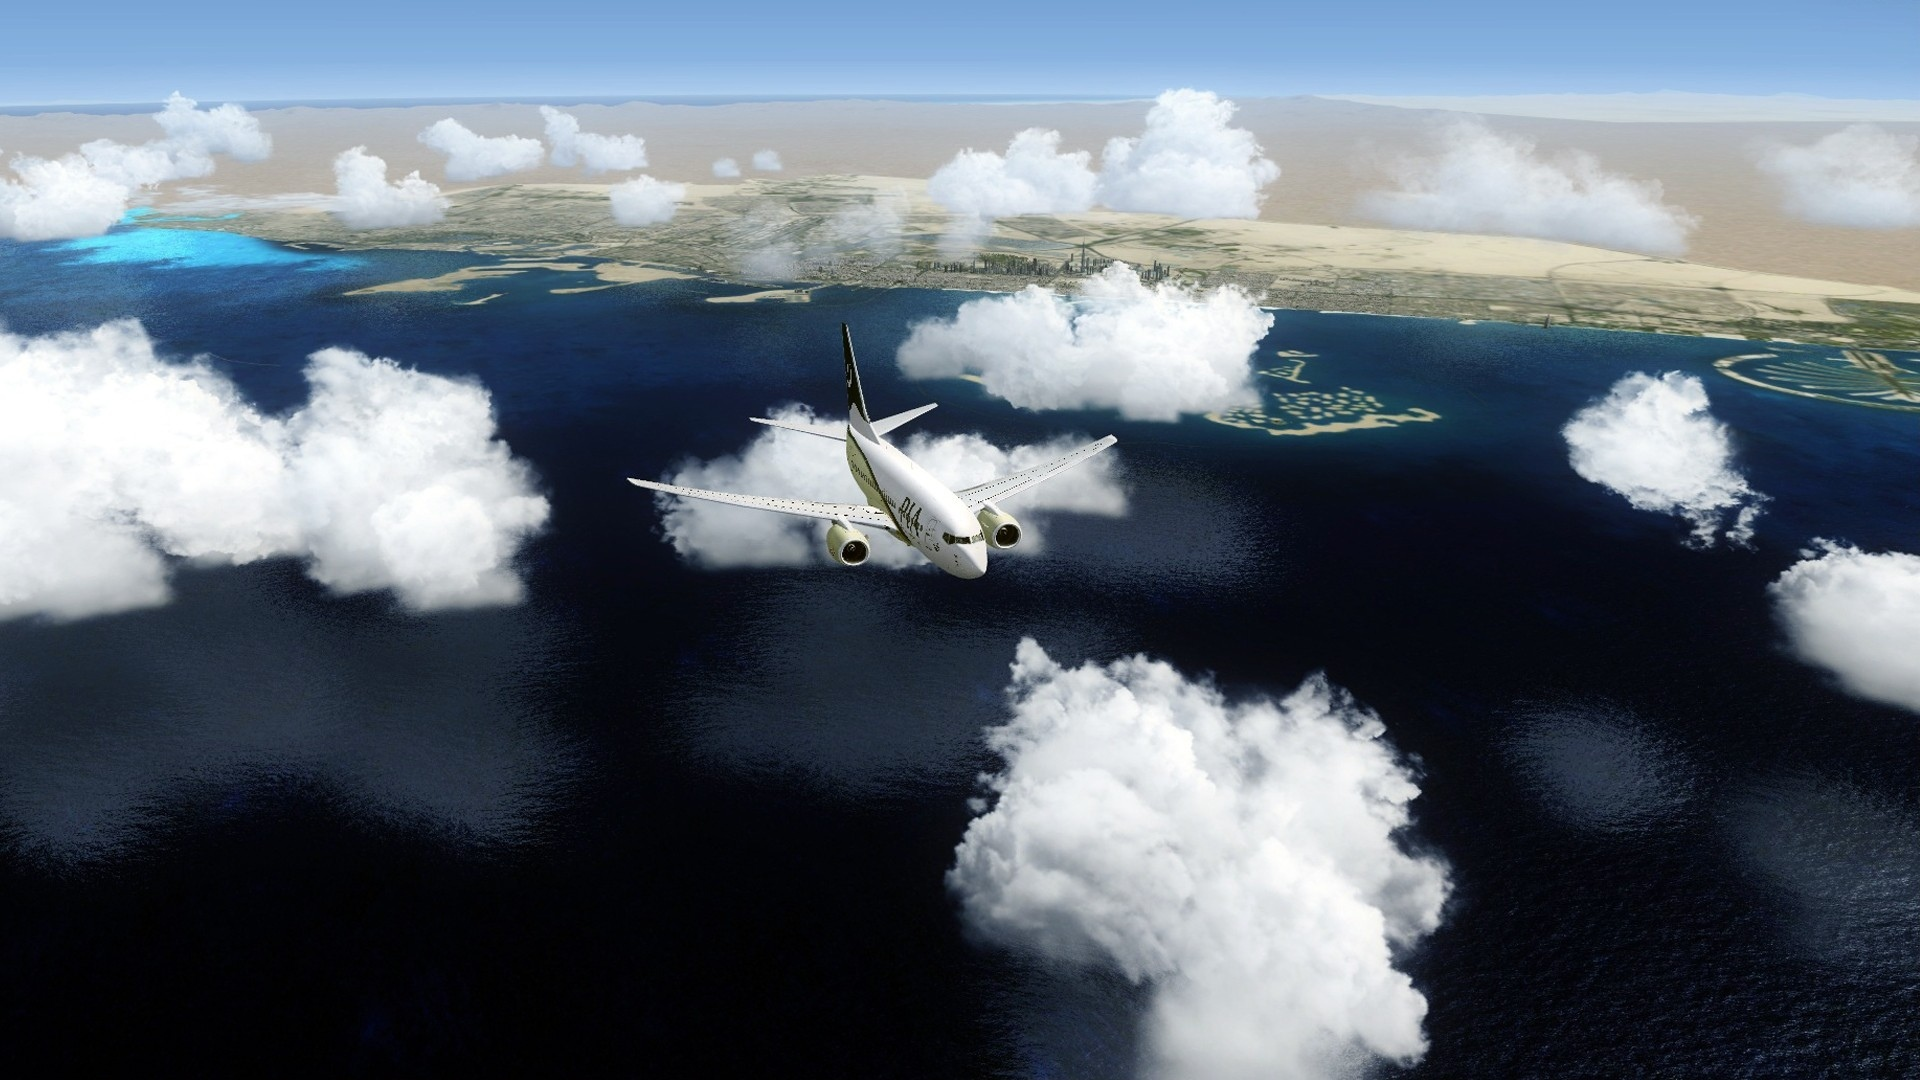 aircraft images in clouds wallpaper - photo #10